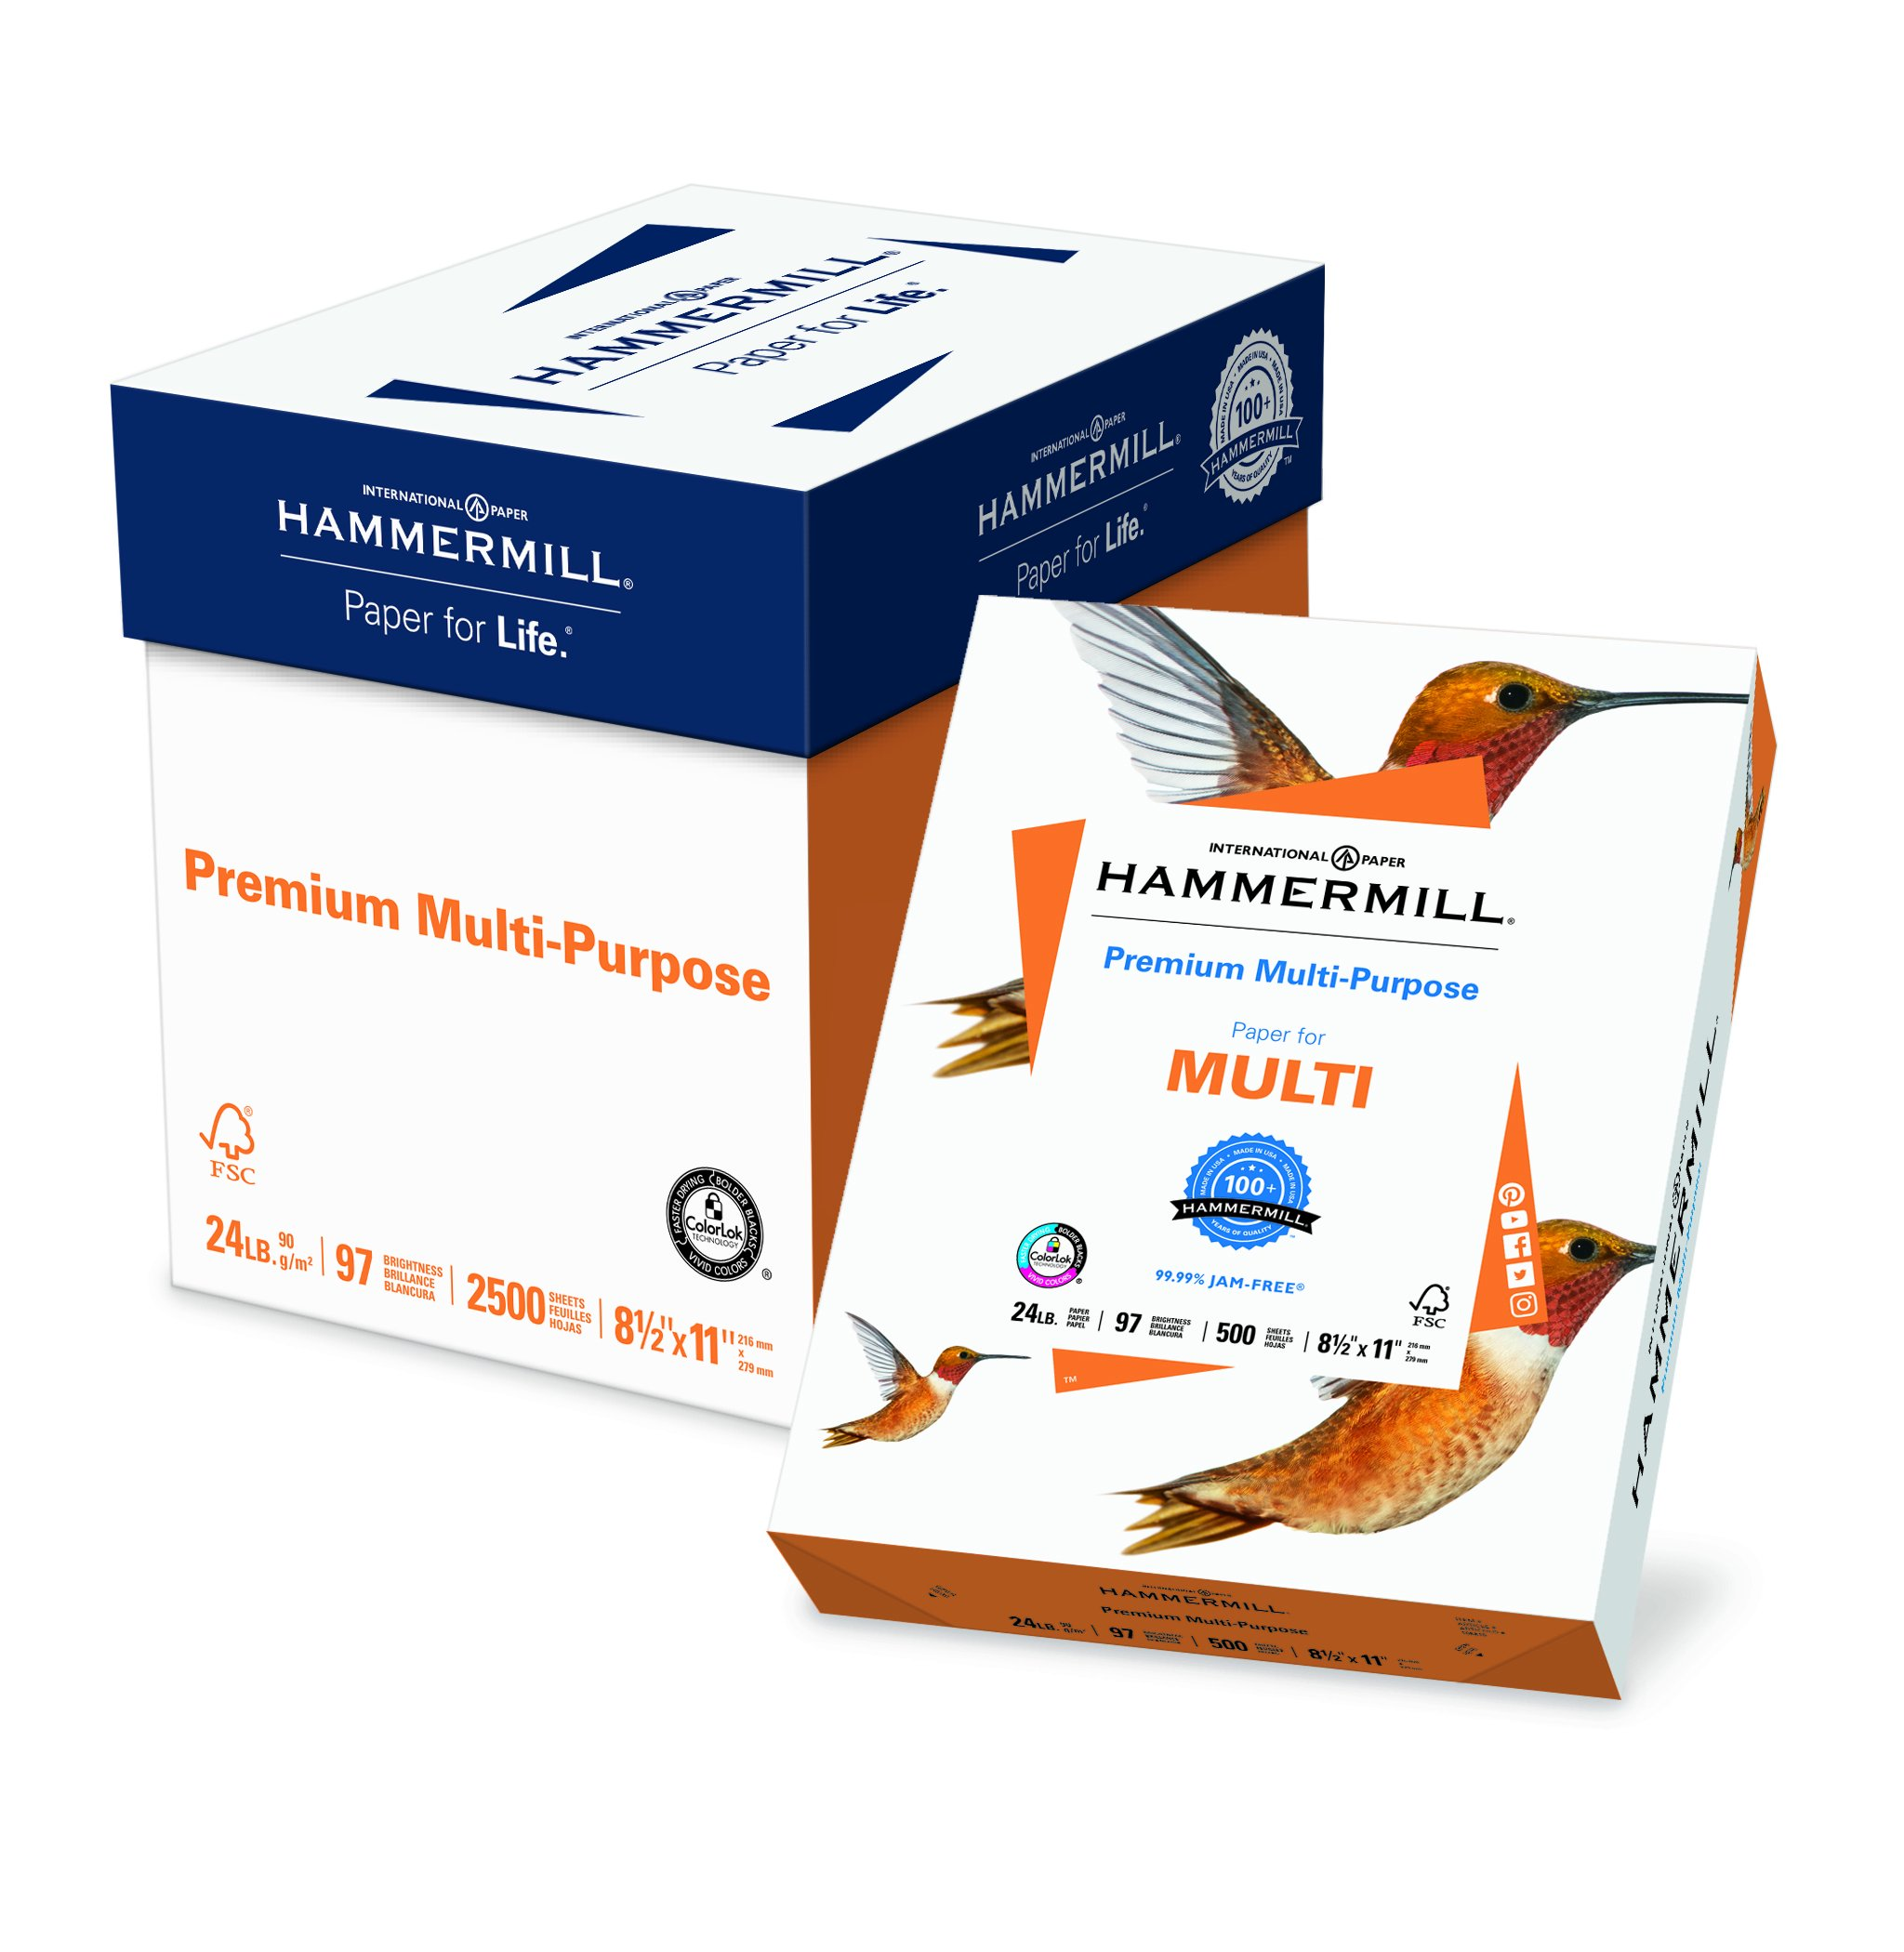 Hammermill Paper, Premium Multipurpose Paper, 8.5 x 11 Paper, Letter Size, 24lb Paper, 97 Bright, 5 Ream / 2,500 Sheets (105810C) Acid Free Paper by Hammermill